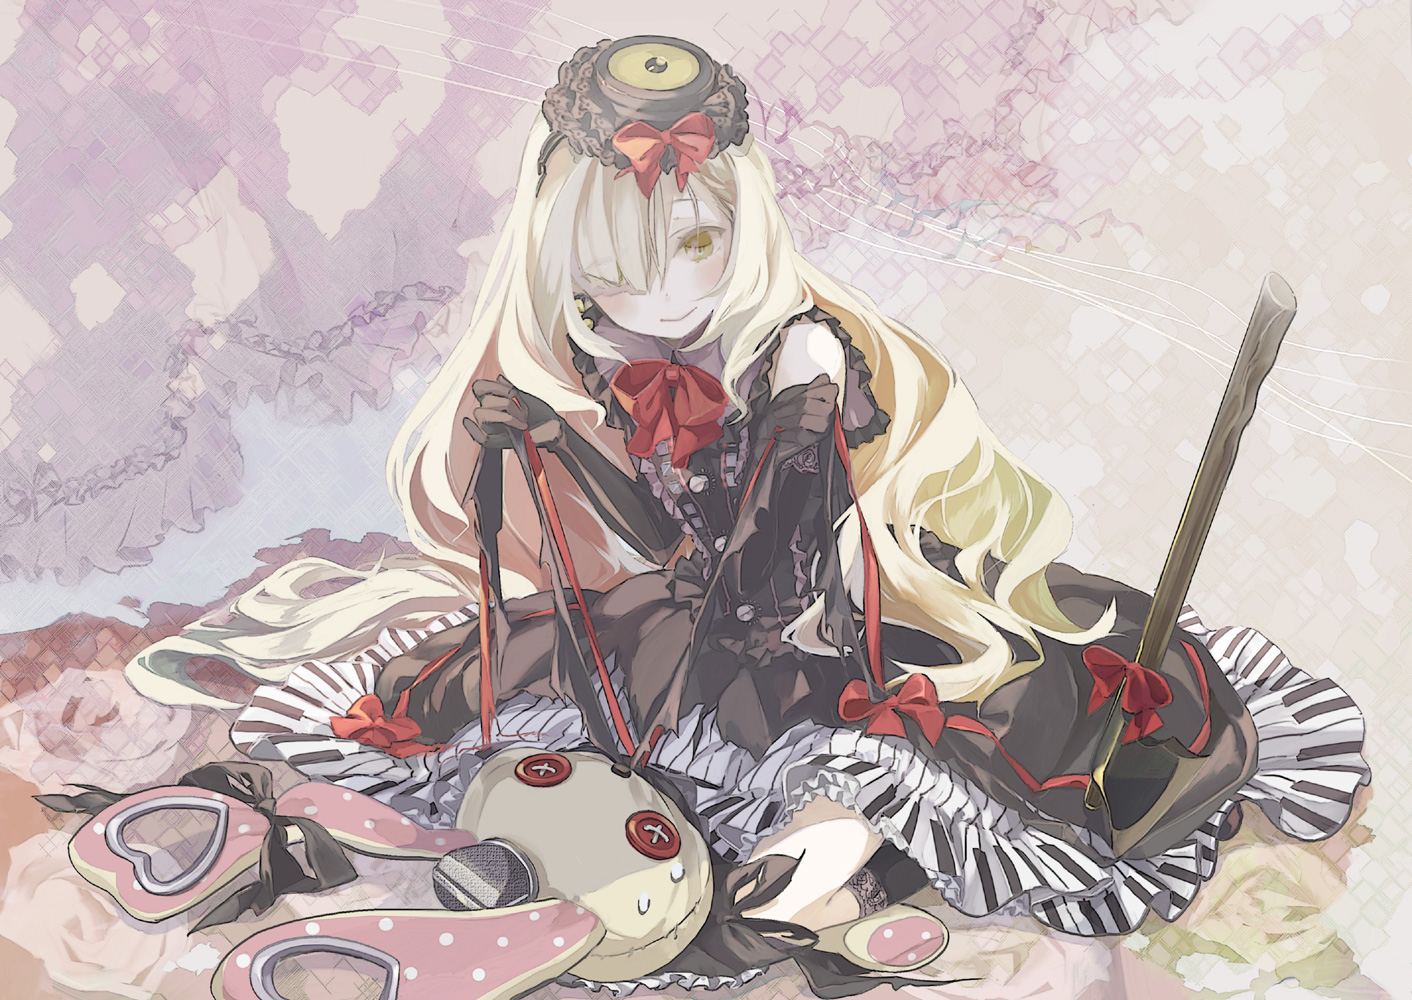 Image Result For Anime Vocaloid Wallpaper Hd